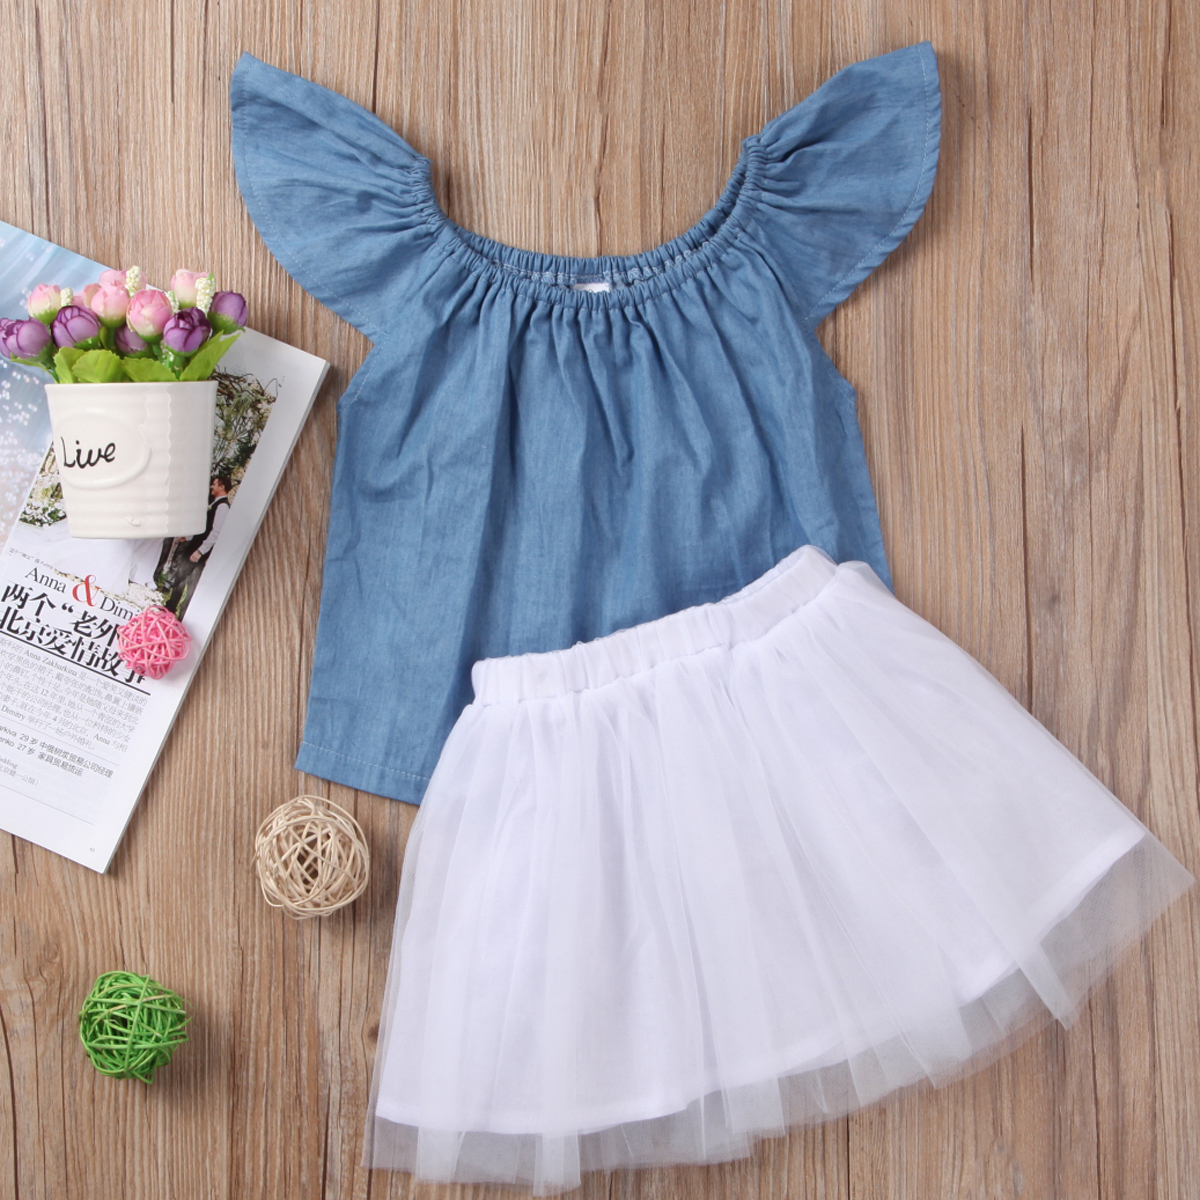 Mother & Kids Reliable Newborn Toddler Baby Girls Floral Short Sleeve Romper Playsuit Tops+tutu Skirt Outfit Set 2pcs Summer Soft And Light Clothing Sets